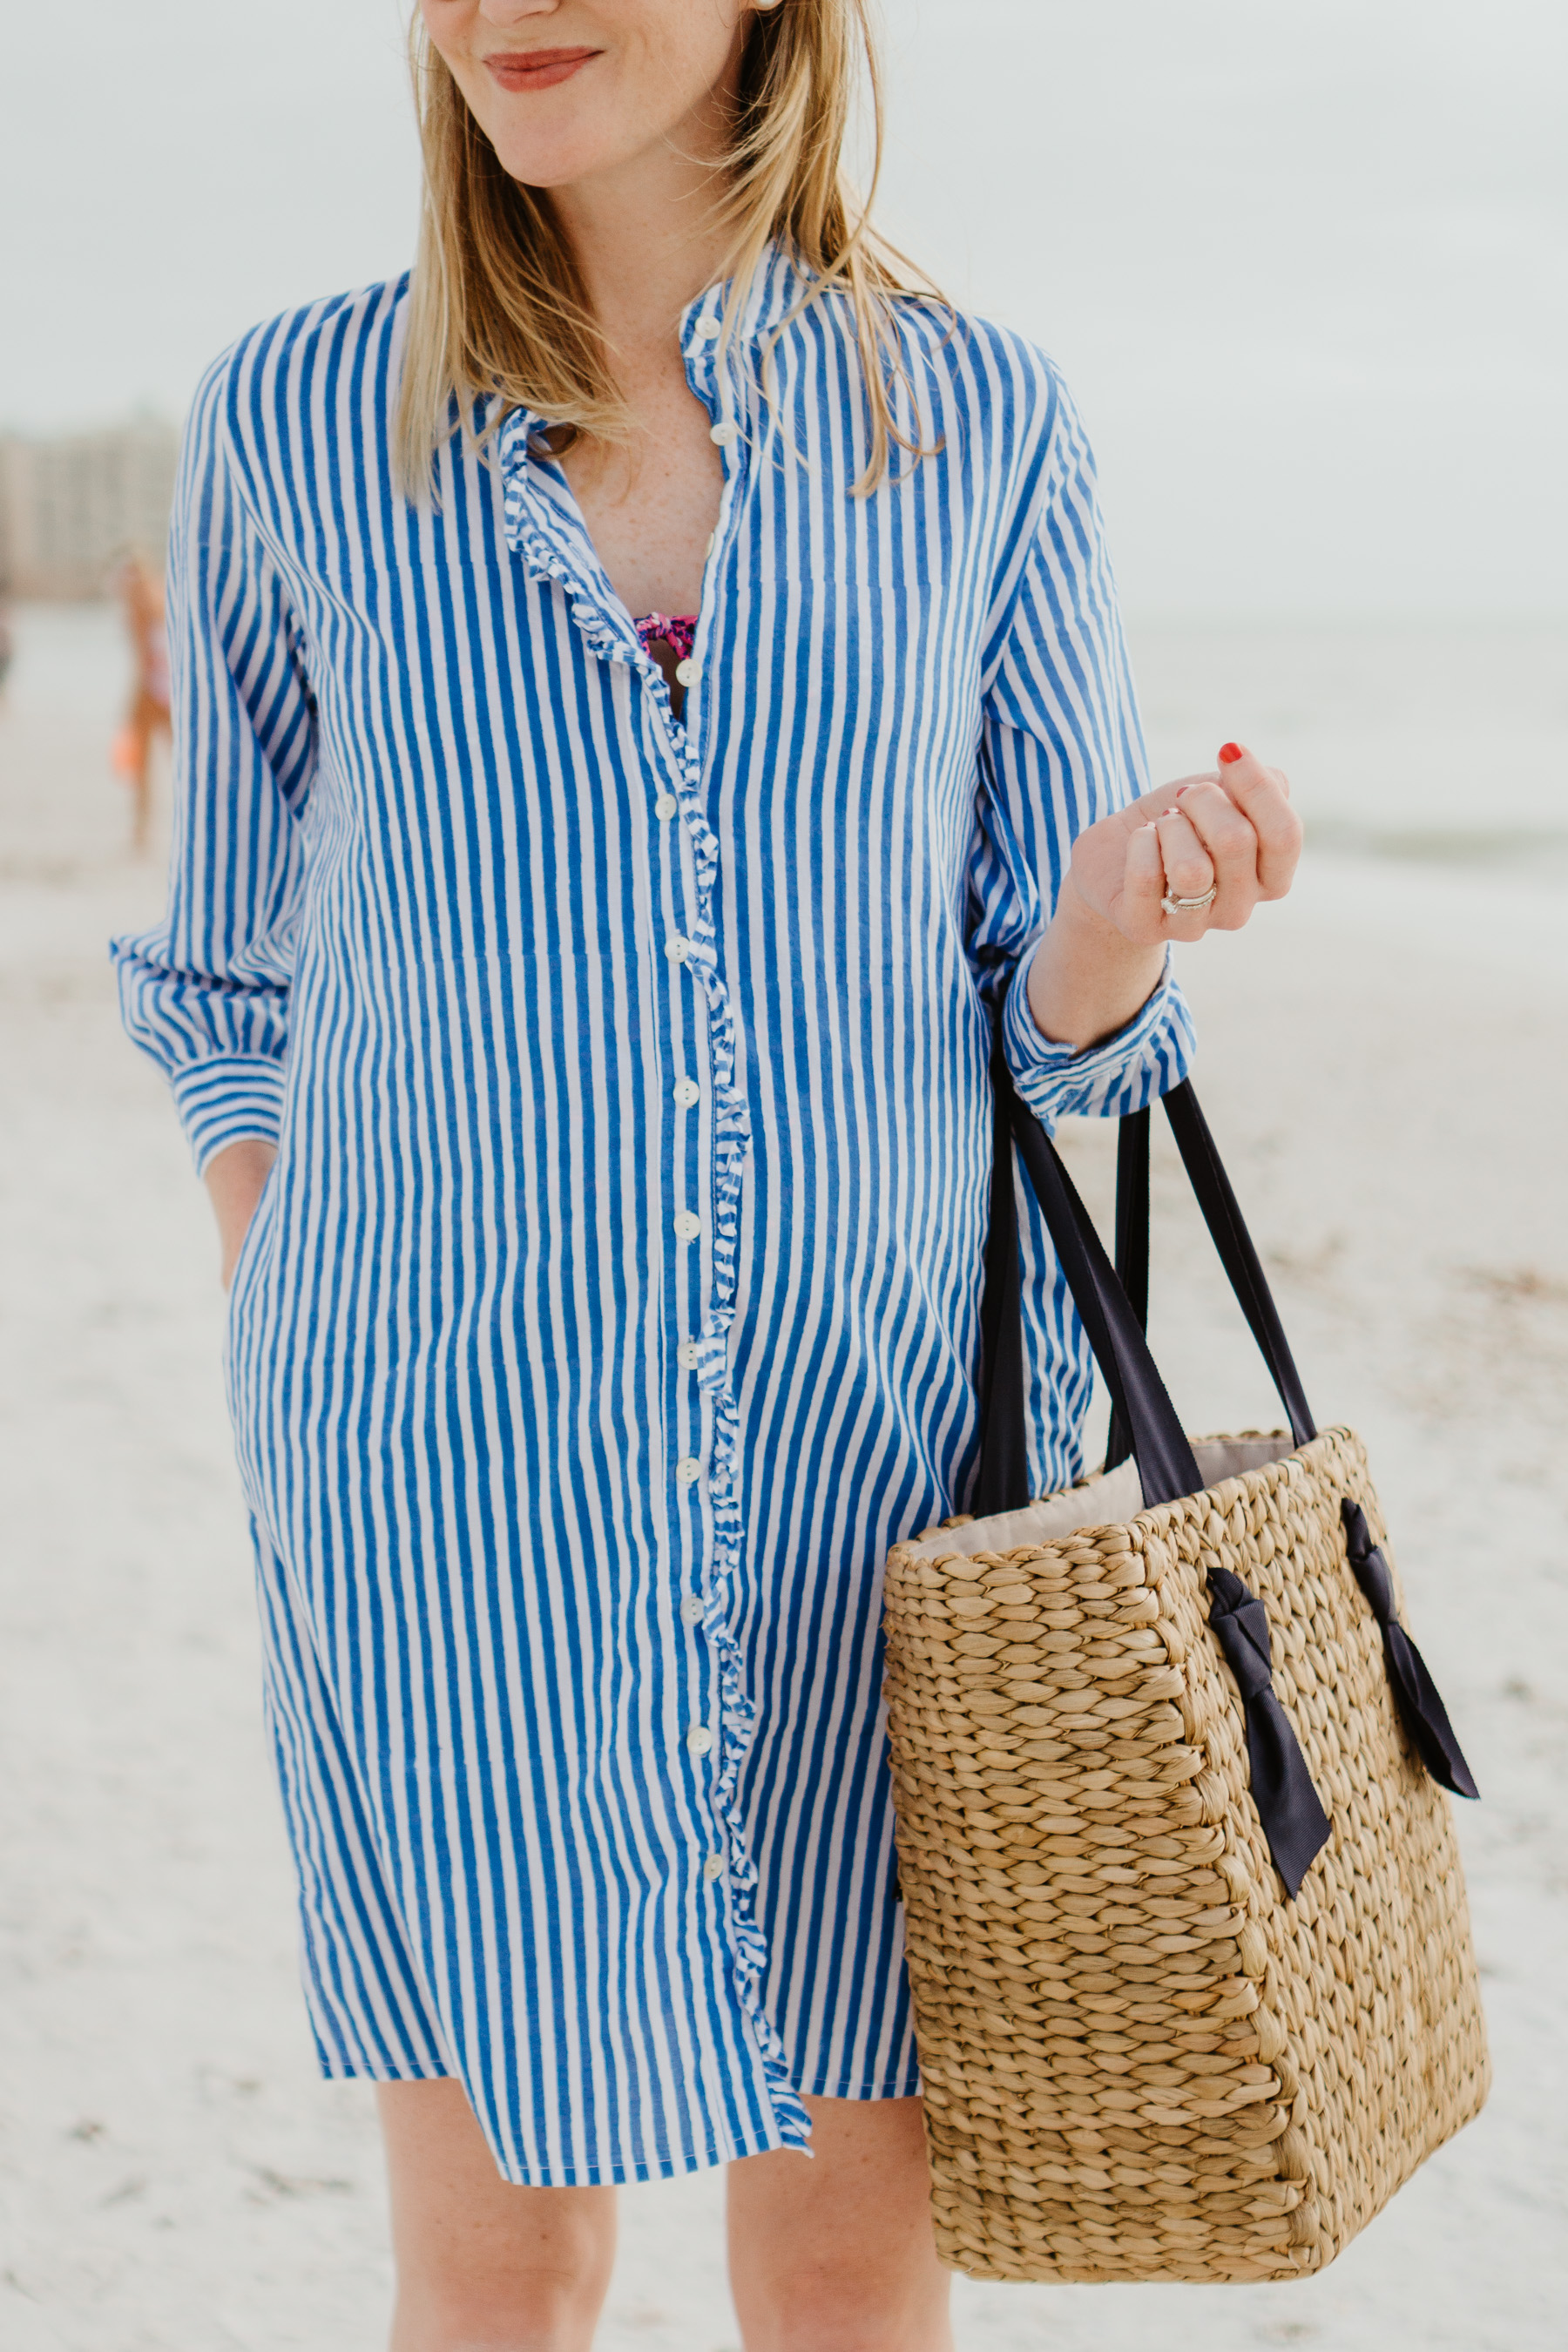 Long striped shirt and woven bag